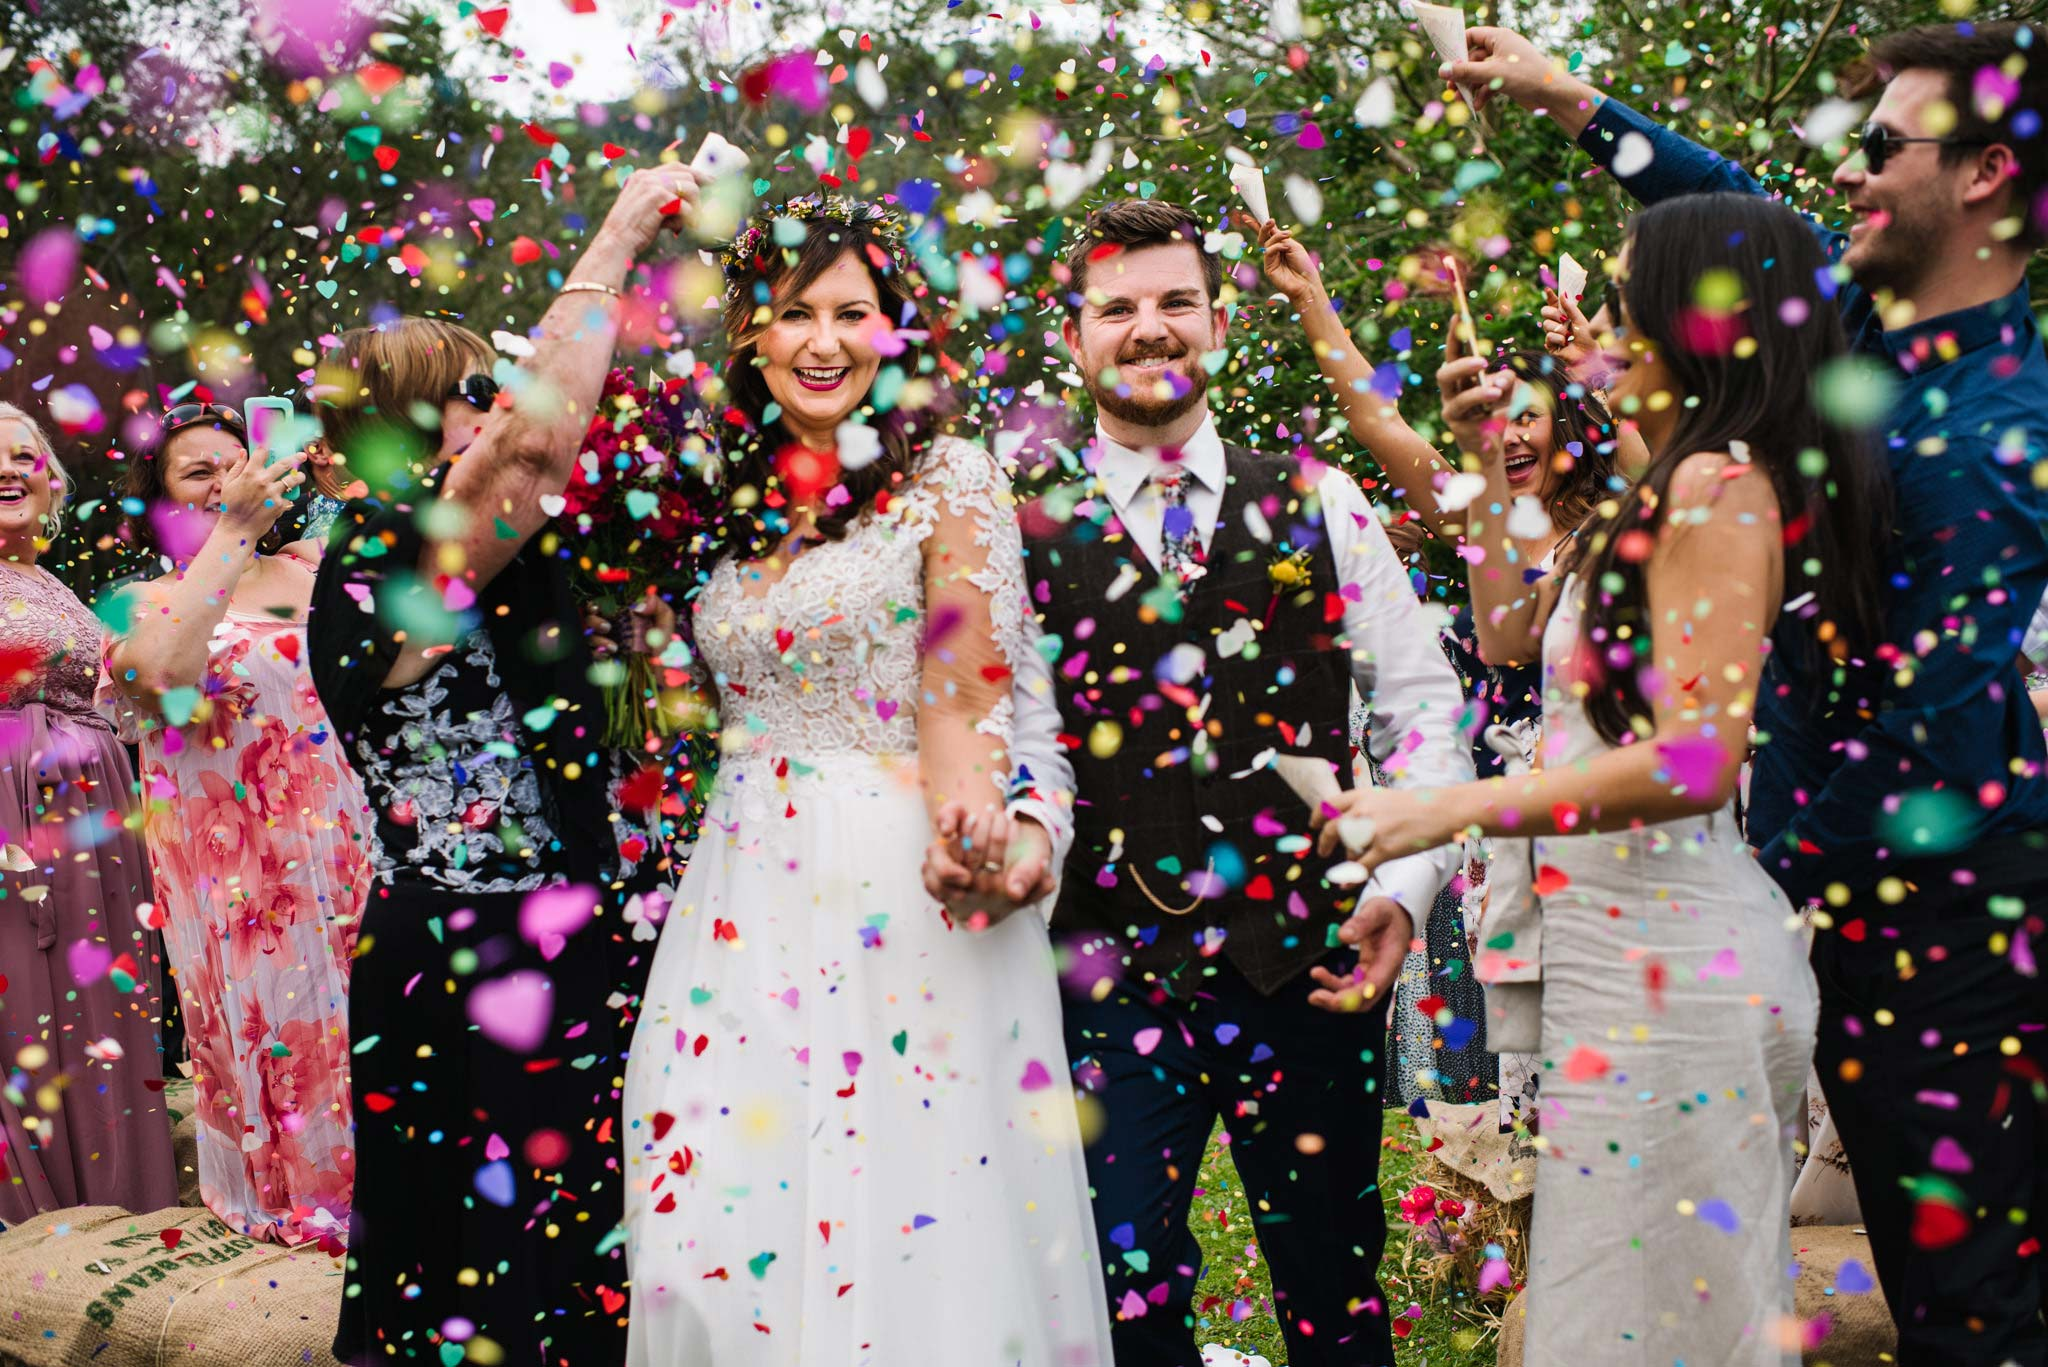 Rainbow confetti showers over smiling bride and groom